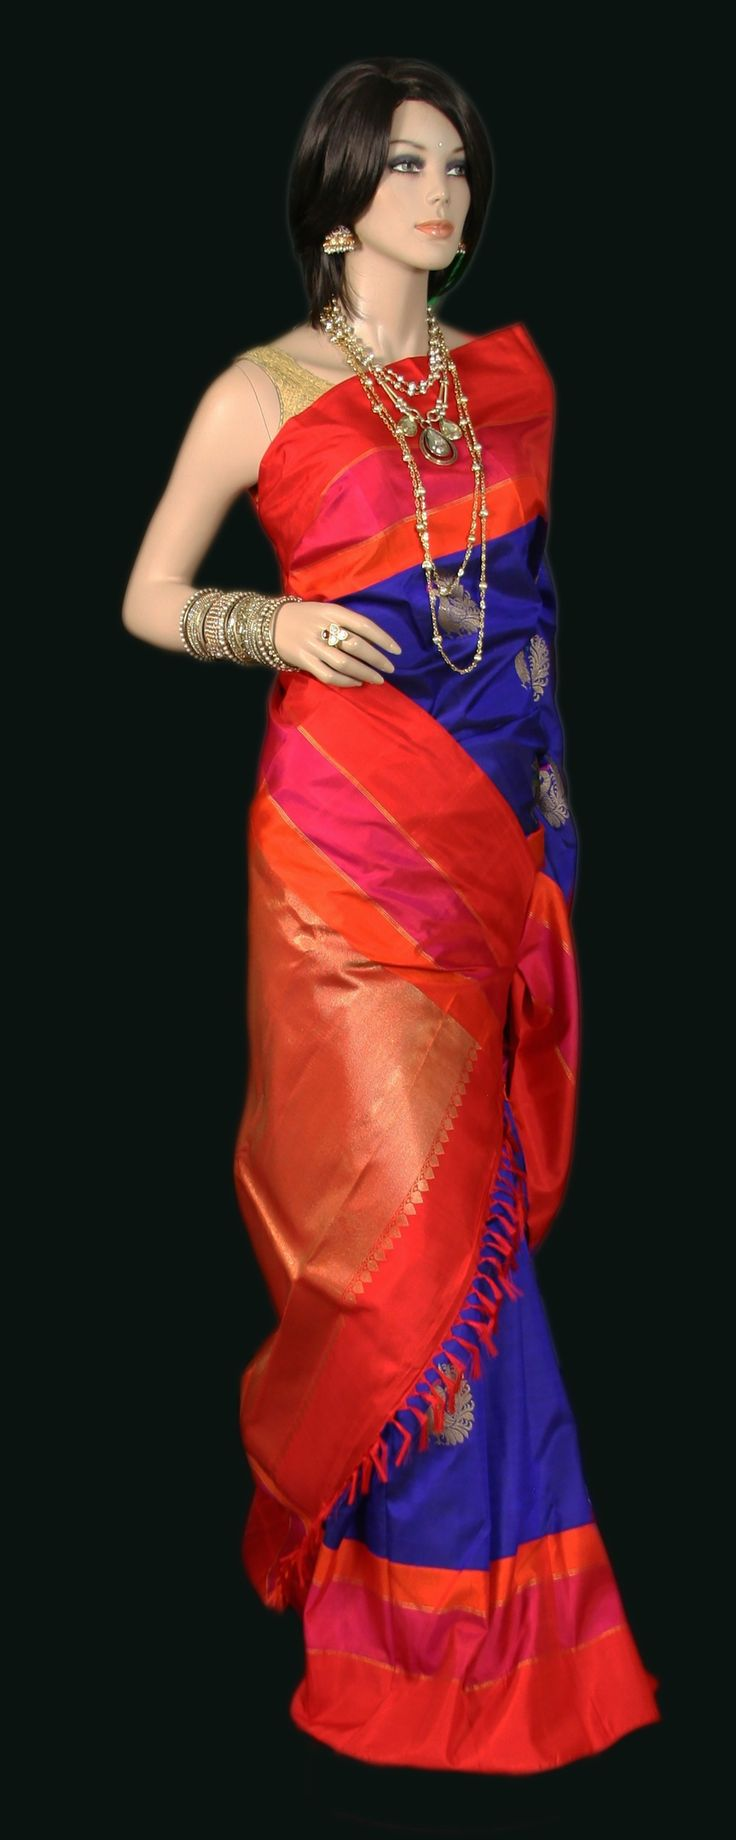 Brilliant Blue Kanjeevaram Silk Saree with Orange Border and Zari jari Buttas; LOVE THE COLORS